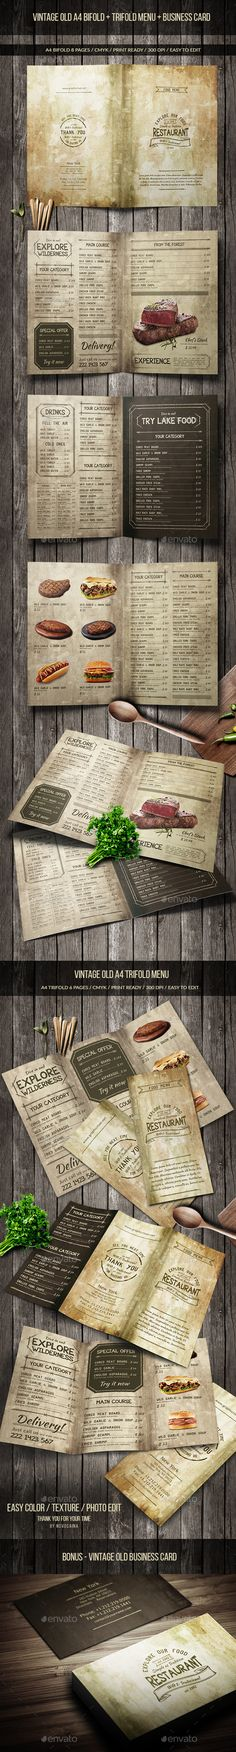 Vintage Old Menu Pack  — PSD Template #drinks menu #retro • Download ➝ https://graphicriver.net/item/vintage-old-menu-pack/18517760?ref=pxcr